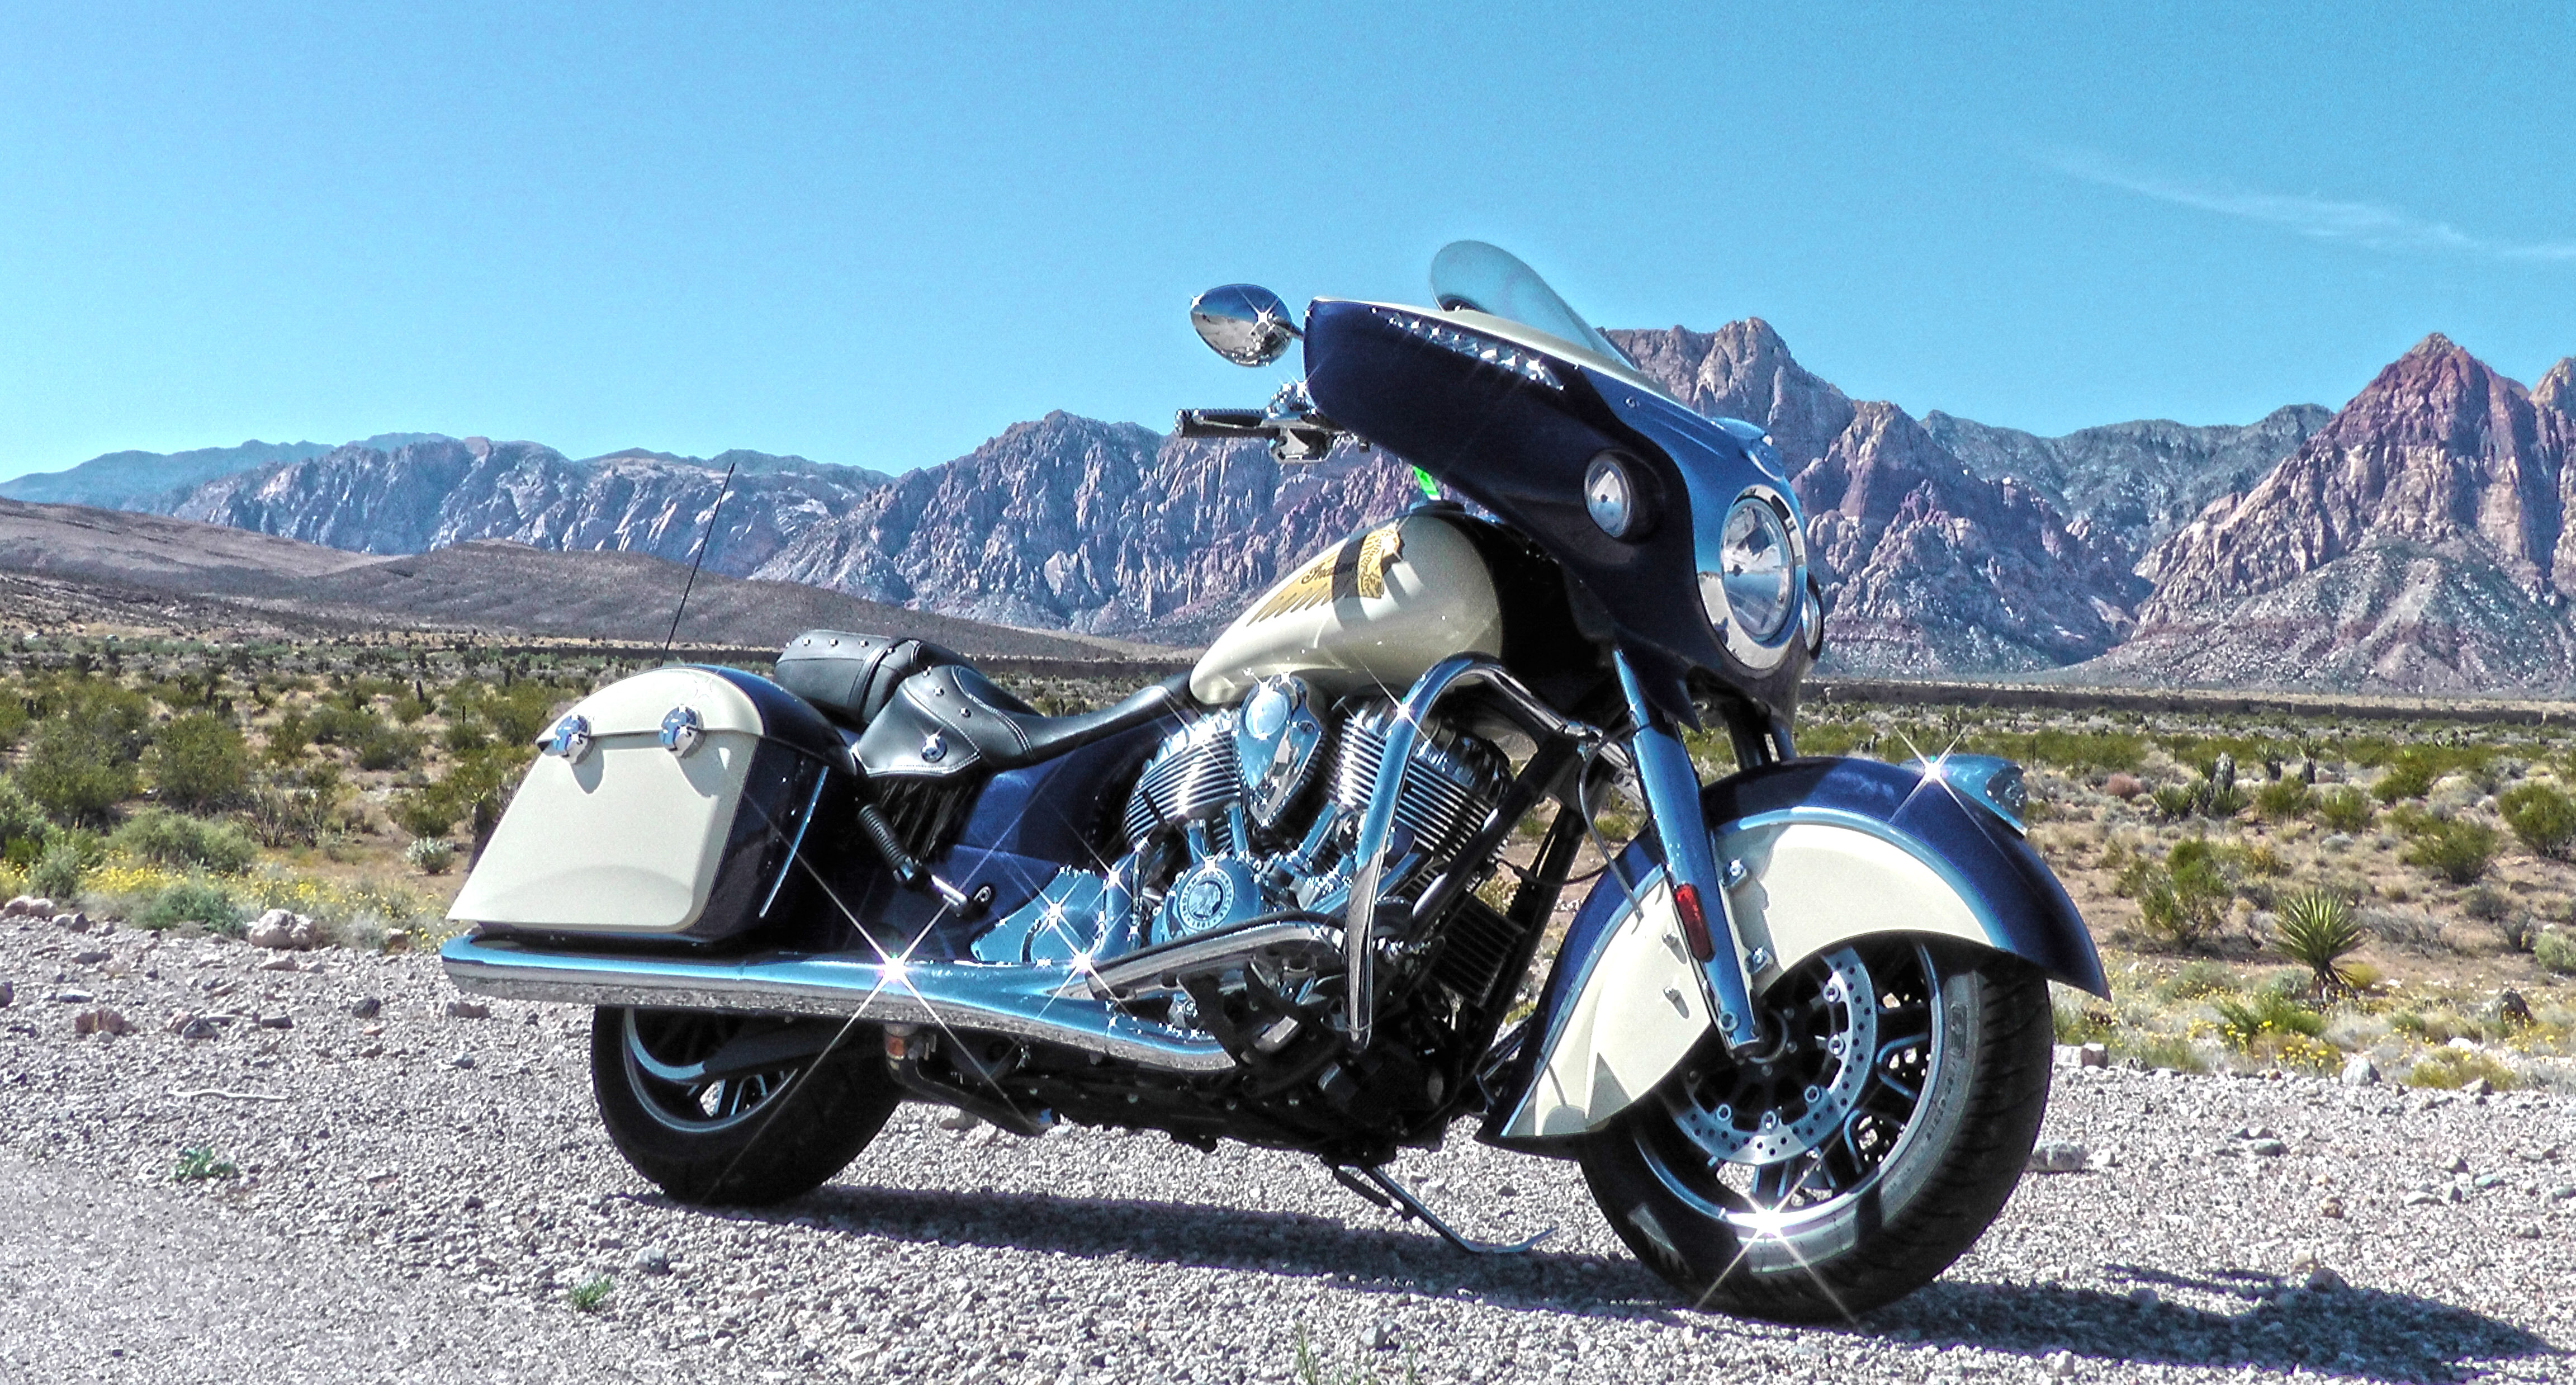 New York Only: See the Brand-New Custom Indian Chief Classic